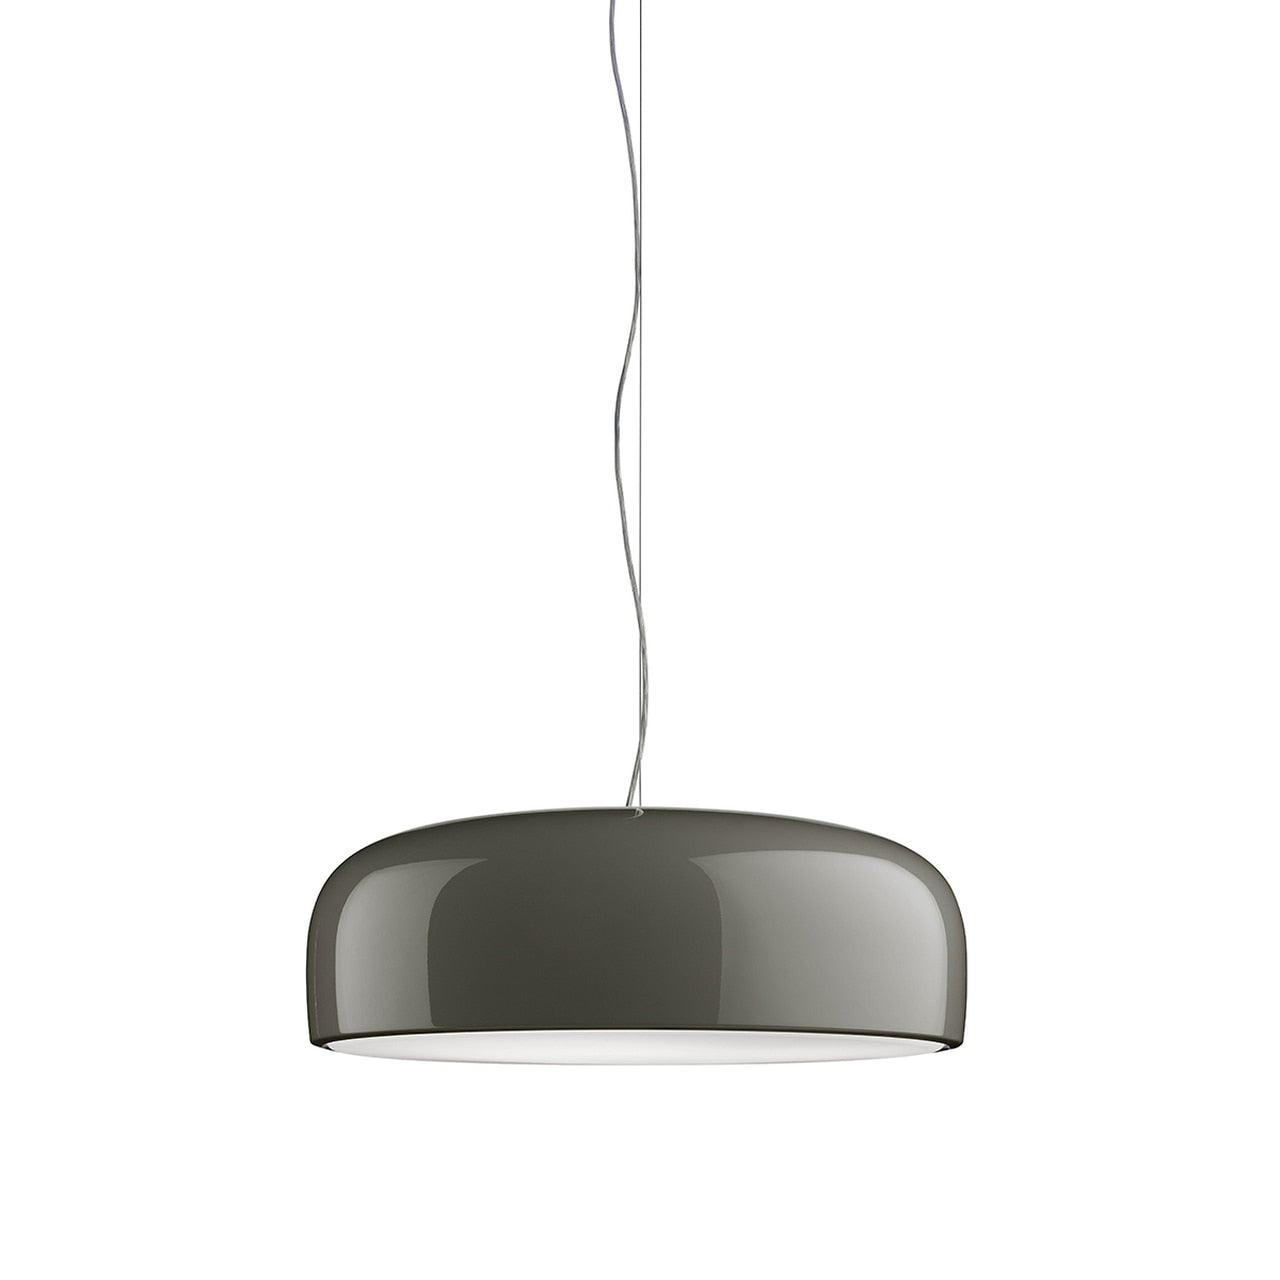 Smithfield S - Fluorescent Non-Dimmable Pendant Lamp in Mud or Black 3 x 36W